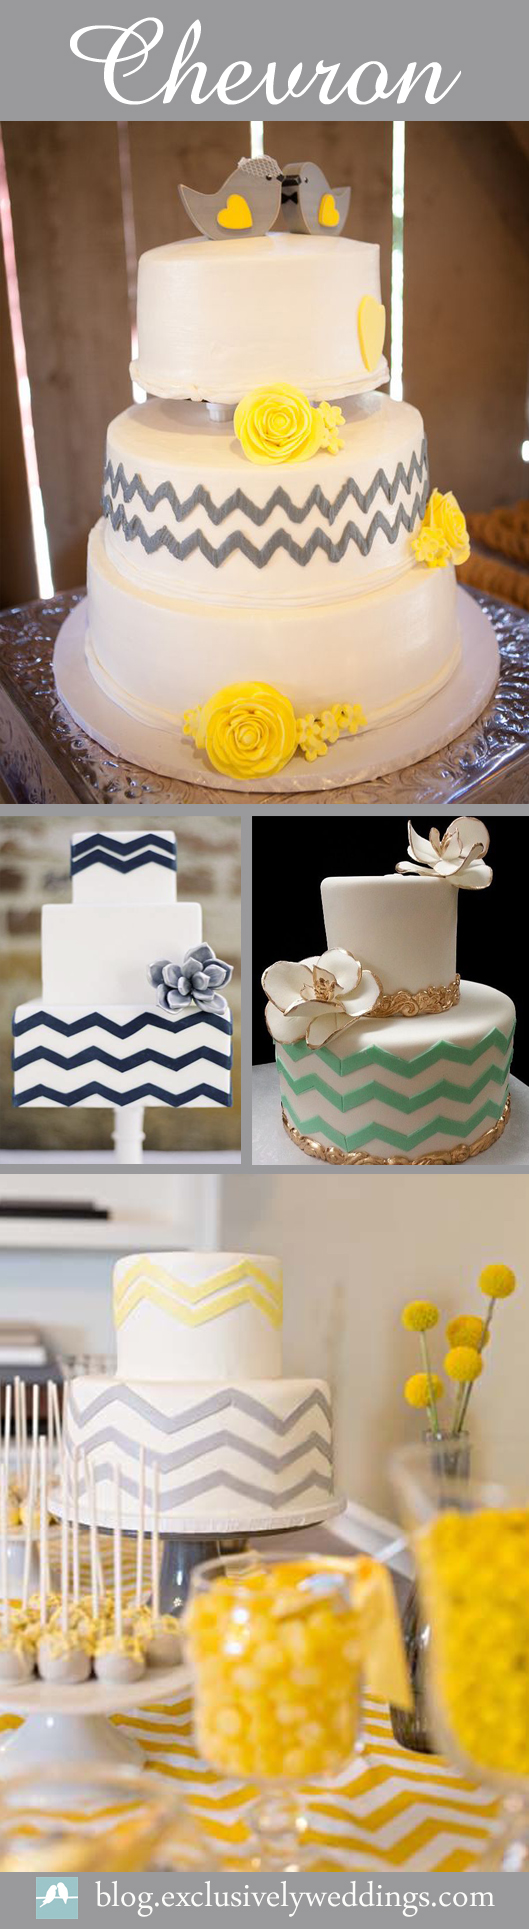 Chevron-Wedding-Cake-Ideas